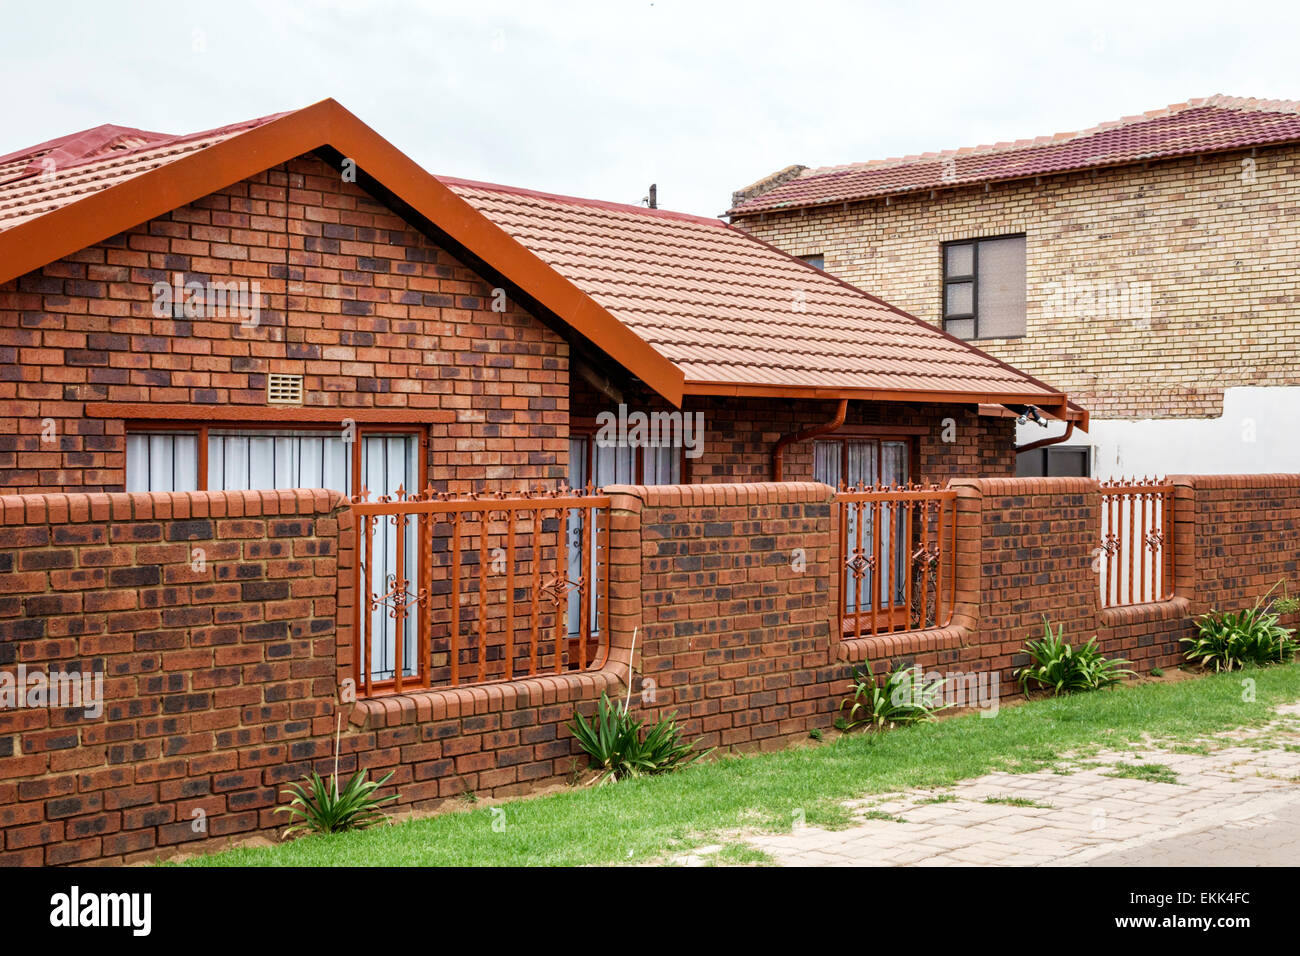 Brick Wall South Africa Stock Photos Brick Wall South Africa